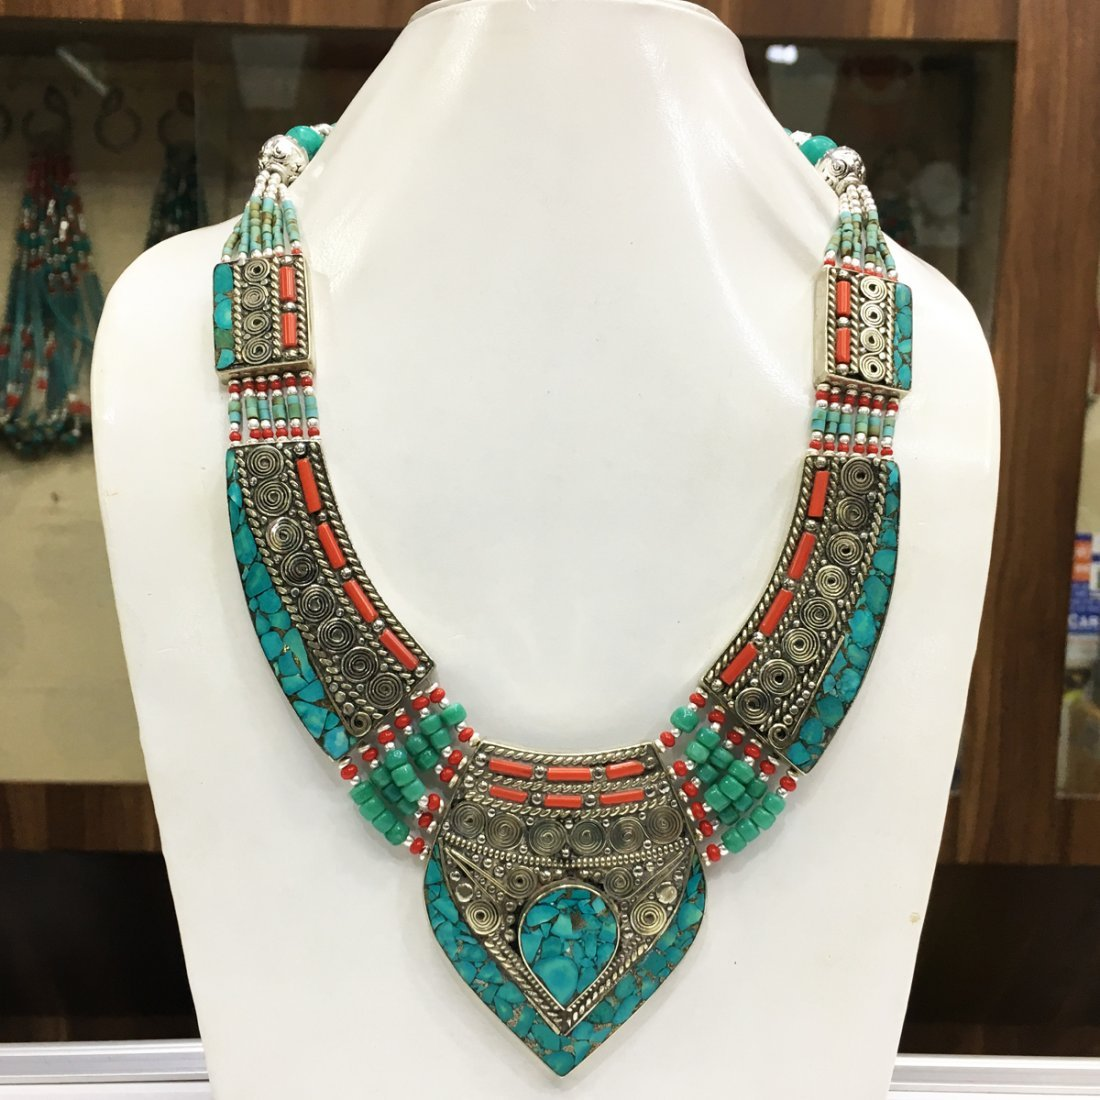 Genuine Tibetan Handmade Nepali Ethnic Necklace